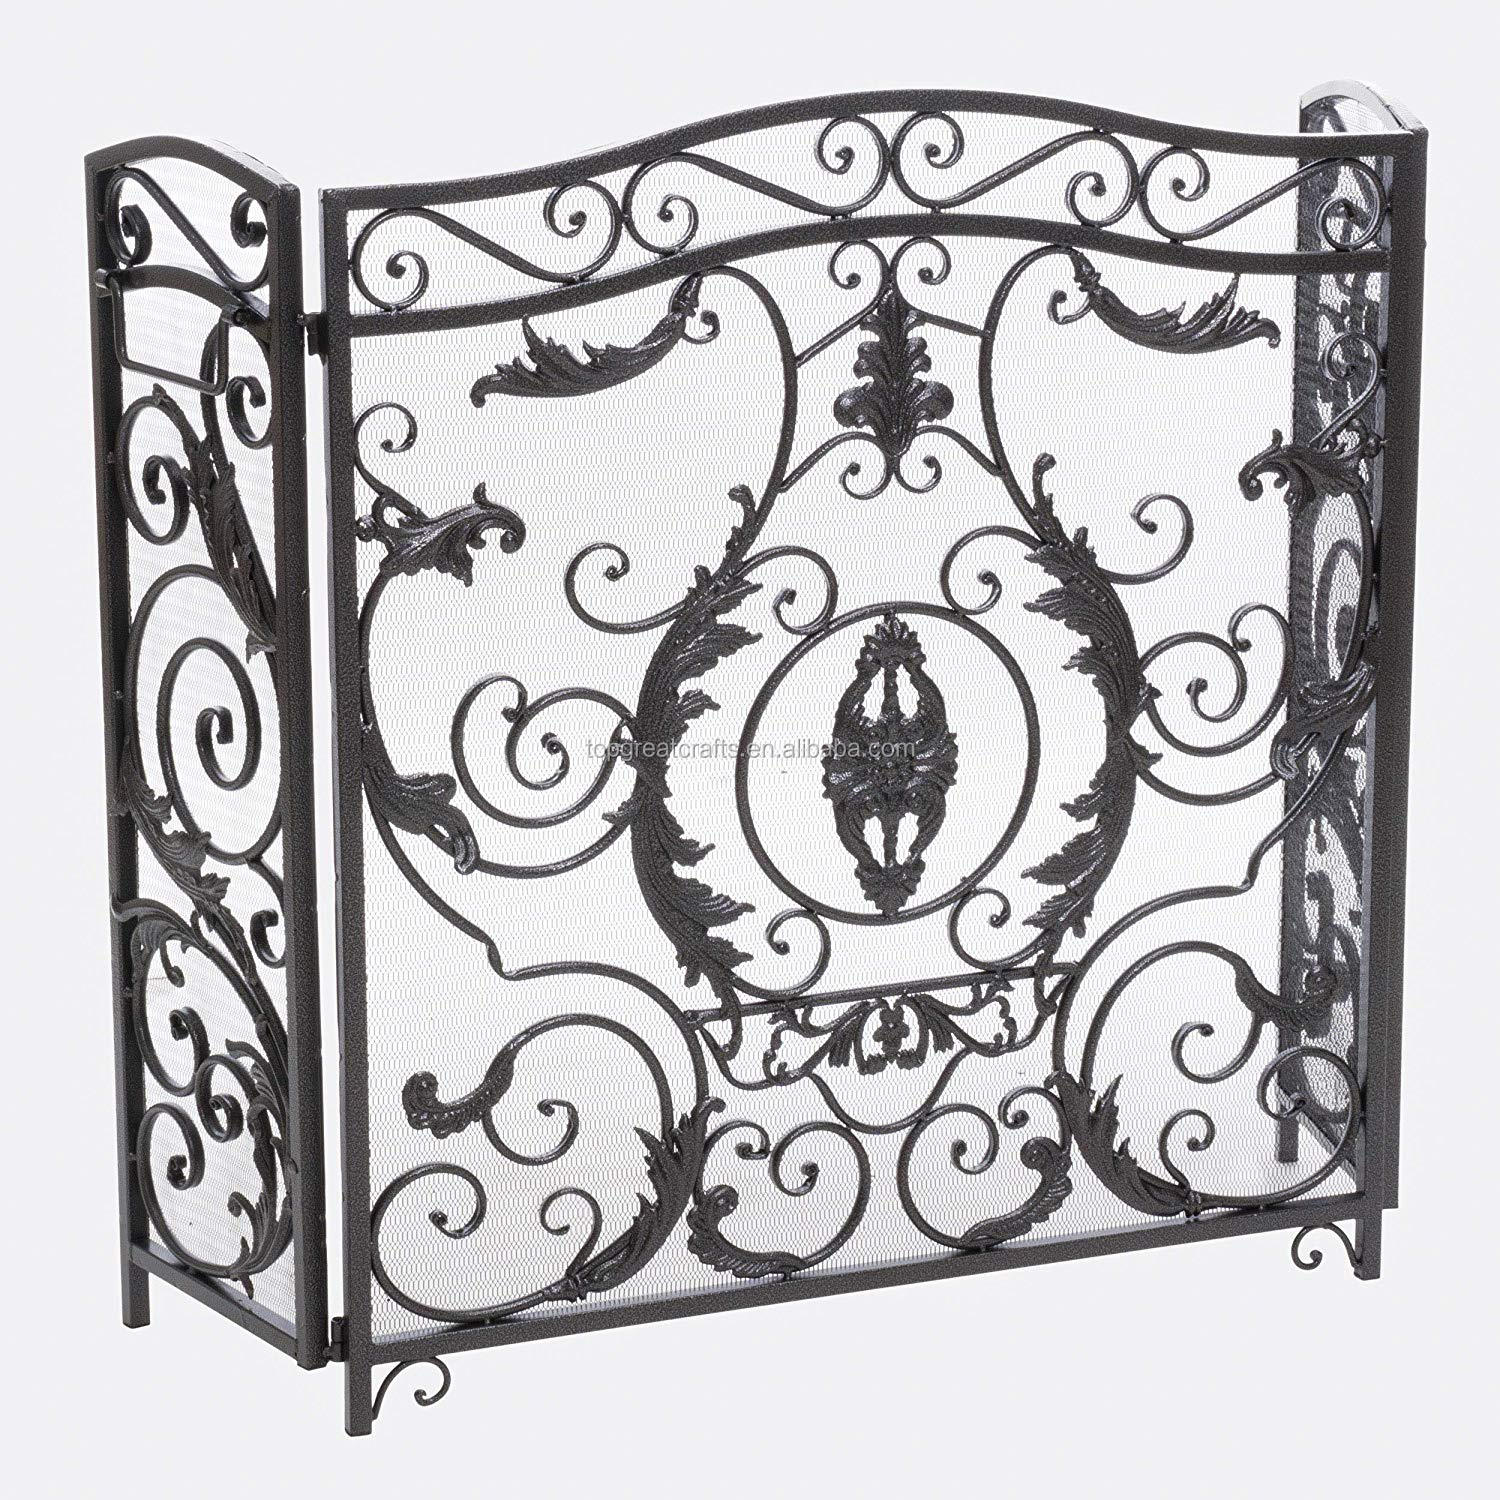 Nordic amorous feelings iron art screen is complex and luxuriant decorative pattern adds protection and elegant fireplace screen